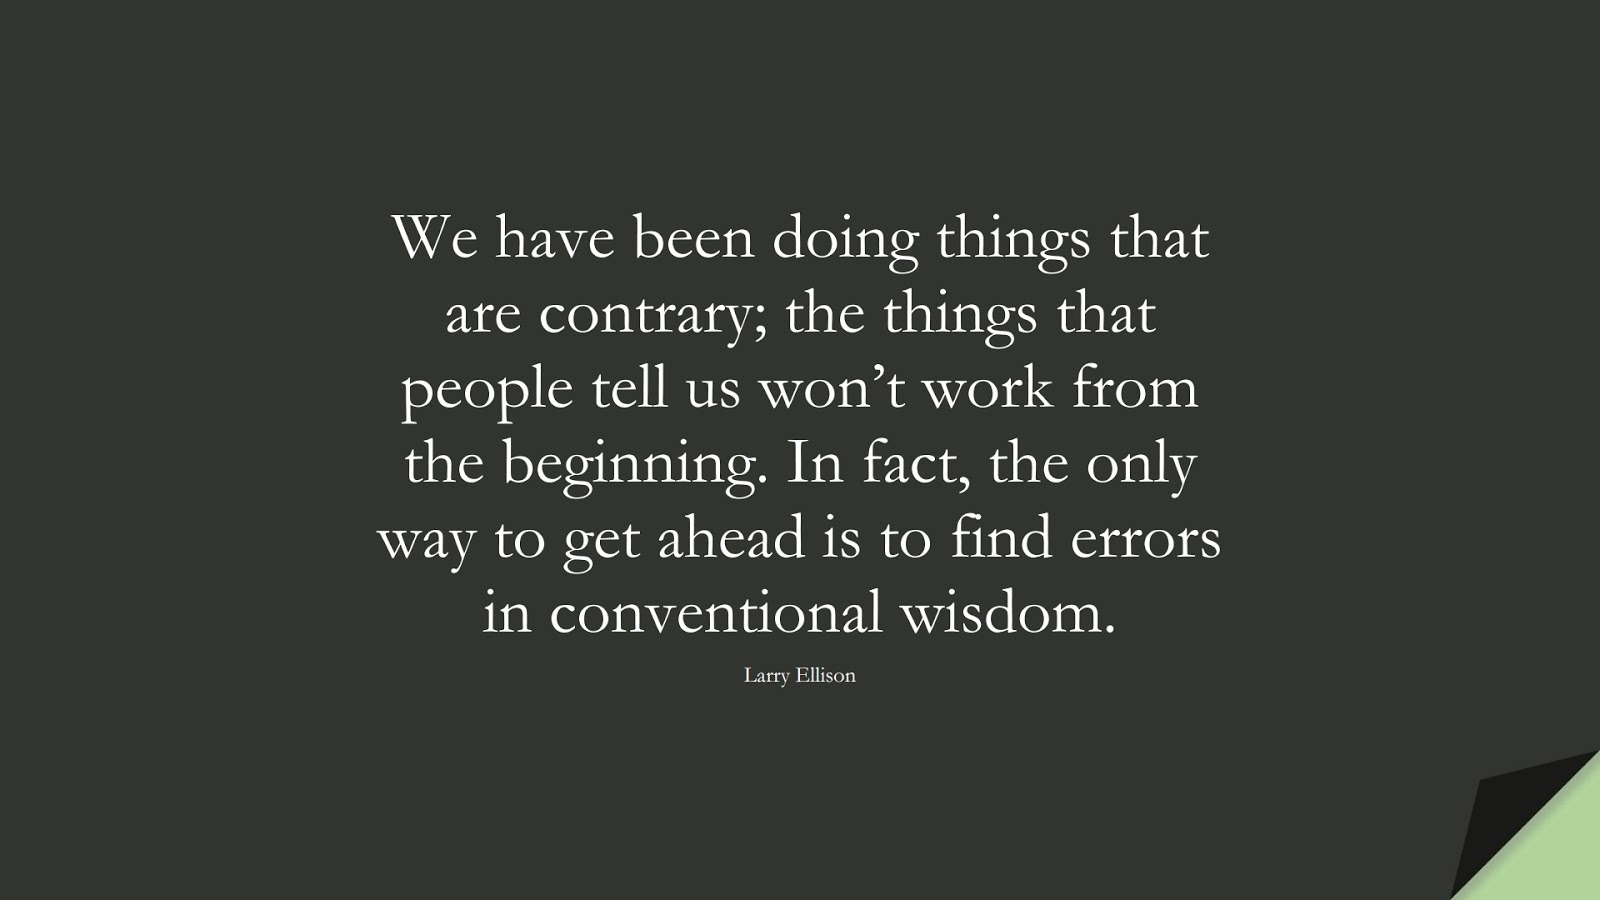 We have been doing things that are contrary; the things that people tell us won't work from the beginning. In fact, the only way to get ahead is to find errors in conventional wisdom. (Larry Ellison);  #WordsofWisdom